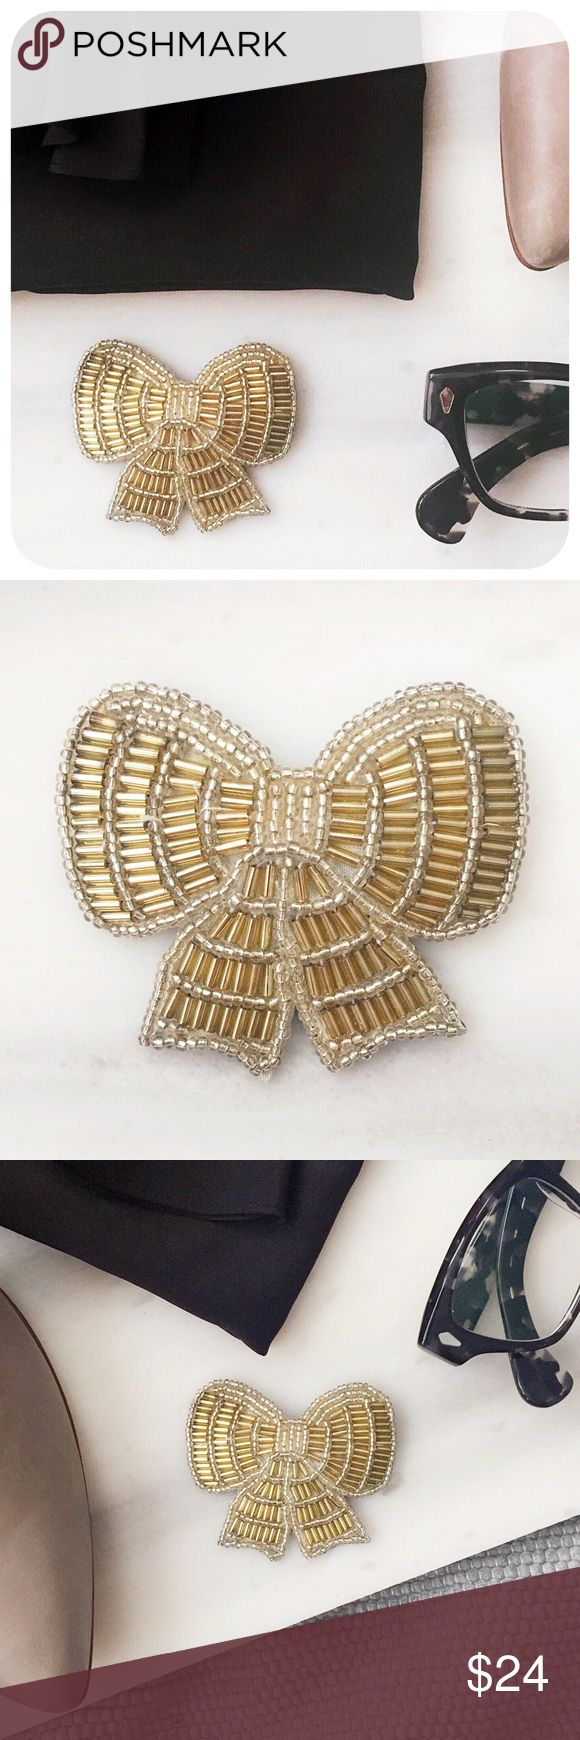 """{{ Vintage }} 1988 Avon Beaded Ribbon Bow Brooch Vintage Avon bow shaped brooch with silver and gold glass seed and bugle beads circa 1980s.   {{ CONDITION }} Excellent - minor scratch on back  {{ MEASUREMENTS }} Width - 2.5"""" Height - 2.25""""  {{ TAGS }} preppy beaded pin formal metallic hipster cute sophisticated feminine pretty girly flirty costume jewelry accessory christmas holidays new years eve geek chic quirky fall winter gift artsy present year's cocktail party kitsch cool  {{ IF YOU…"""